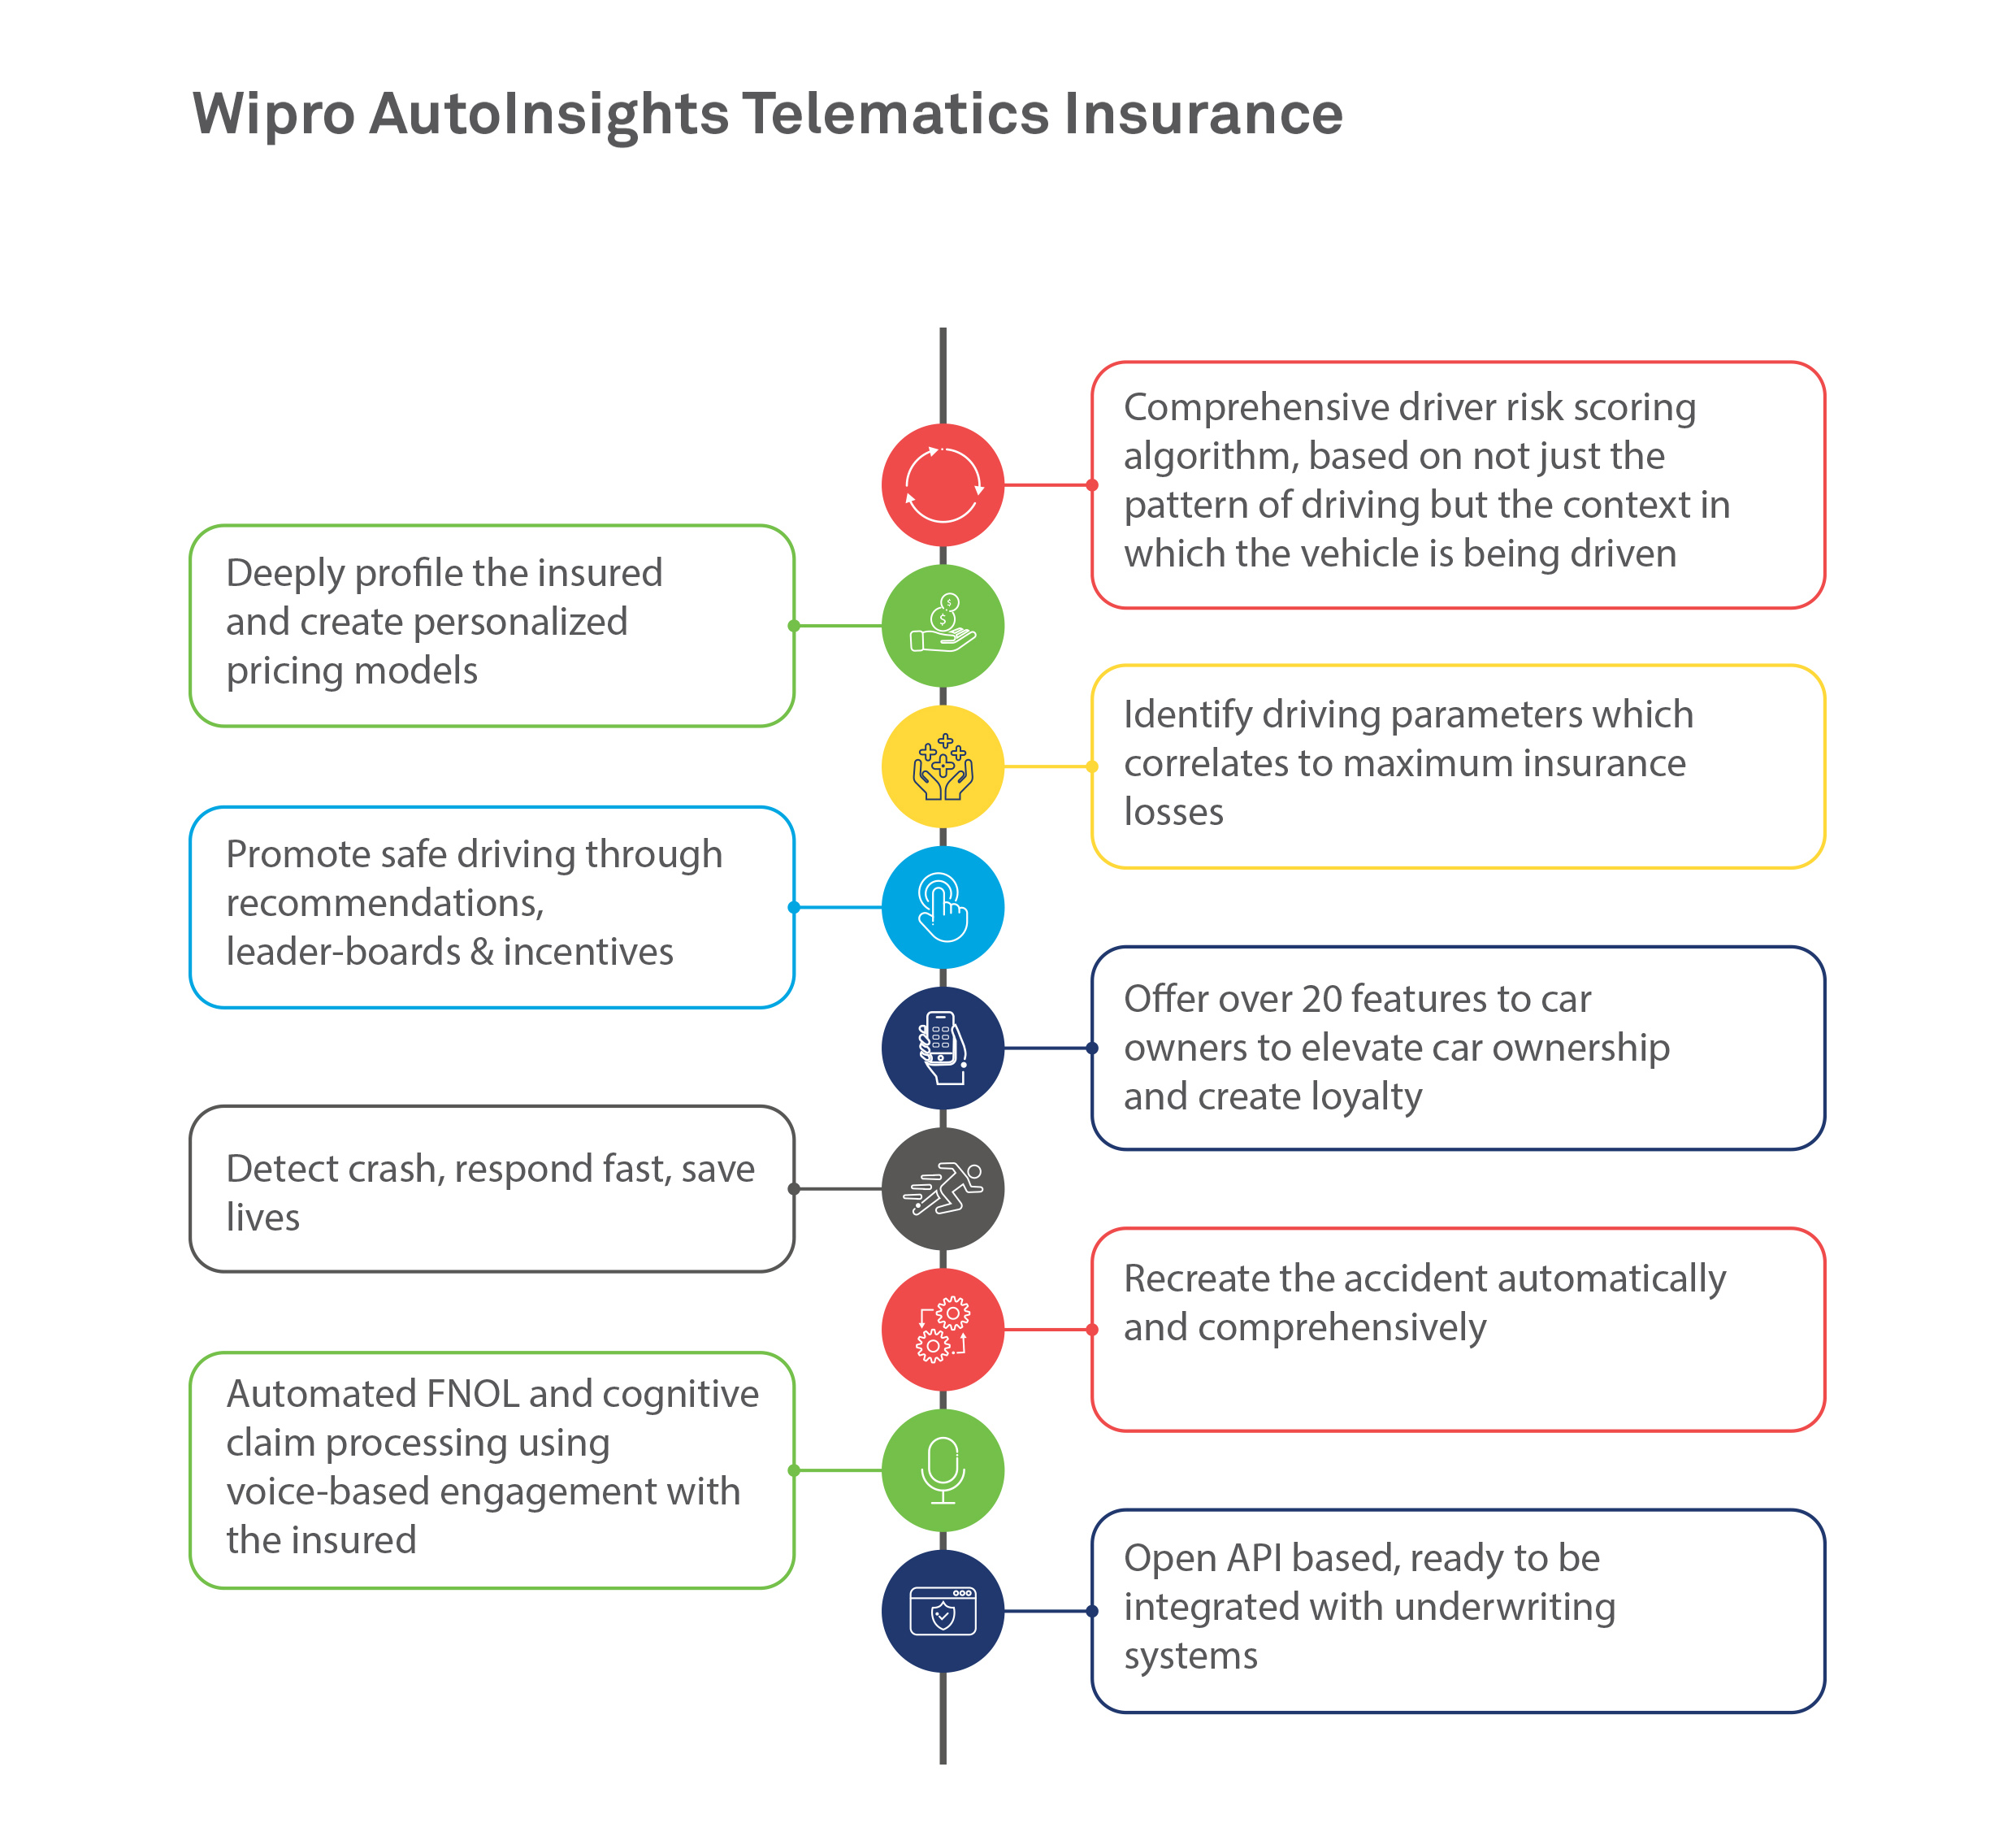 Wipro AutoInsights Telematics Insurance